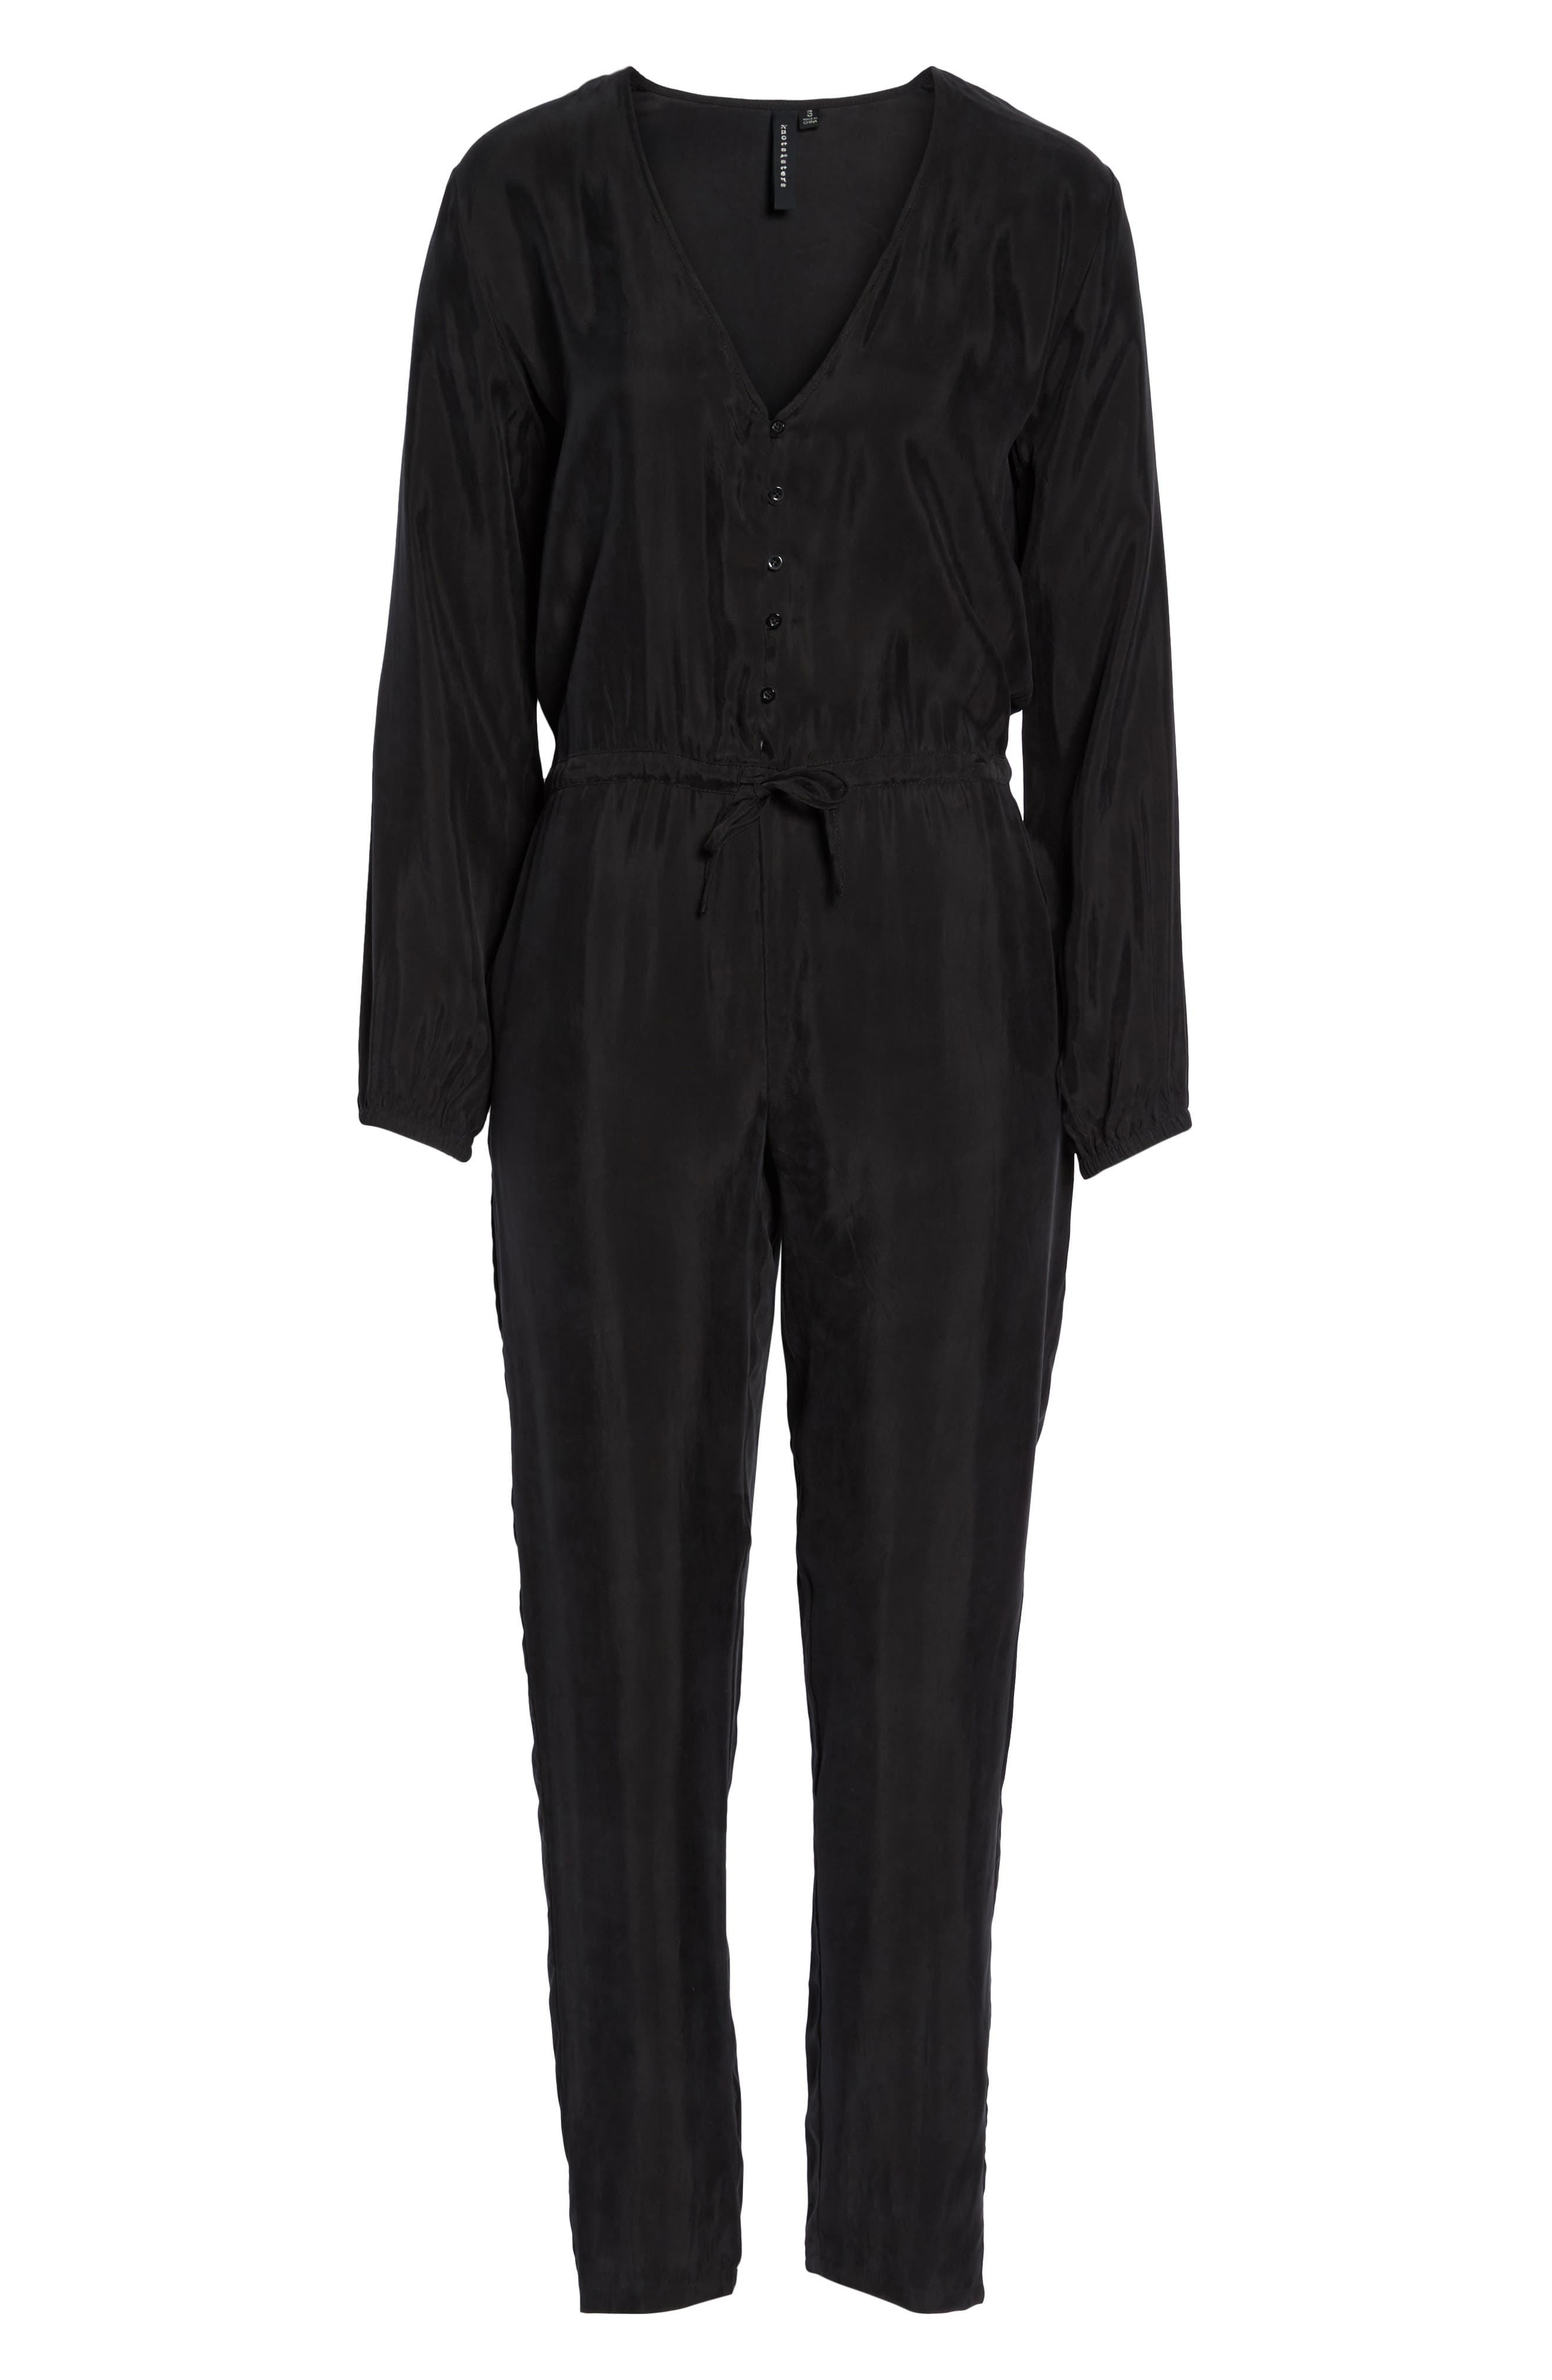 Elizabeth Jumpsuit,                             Alternate thumbnail 6, color,                             001